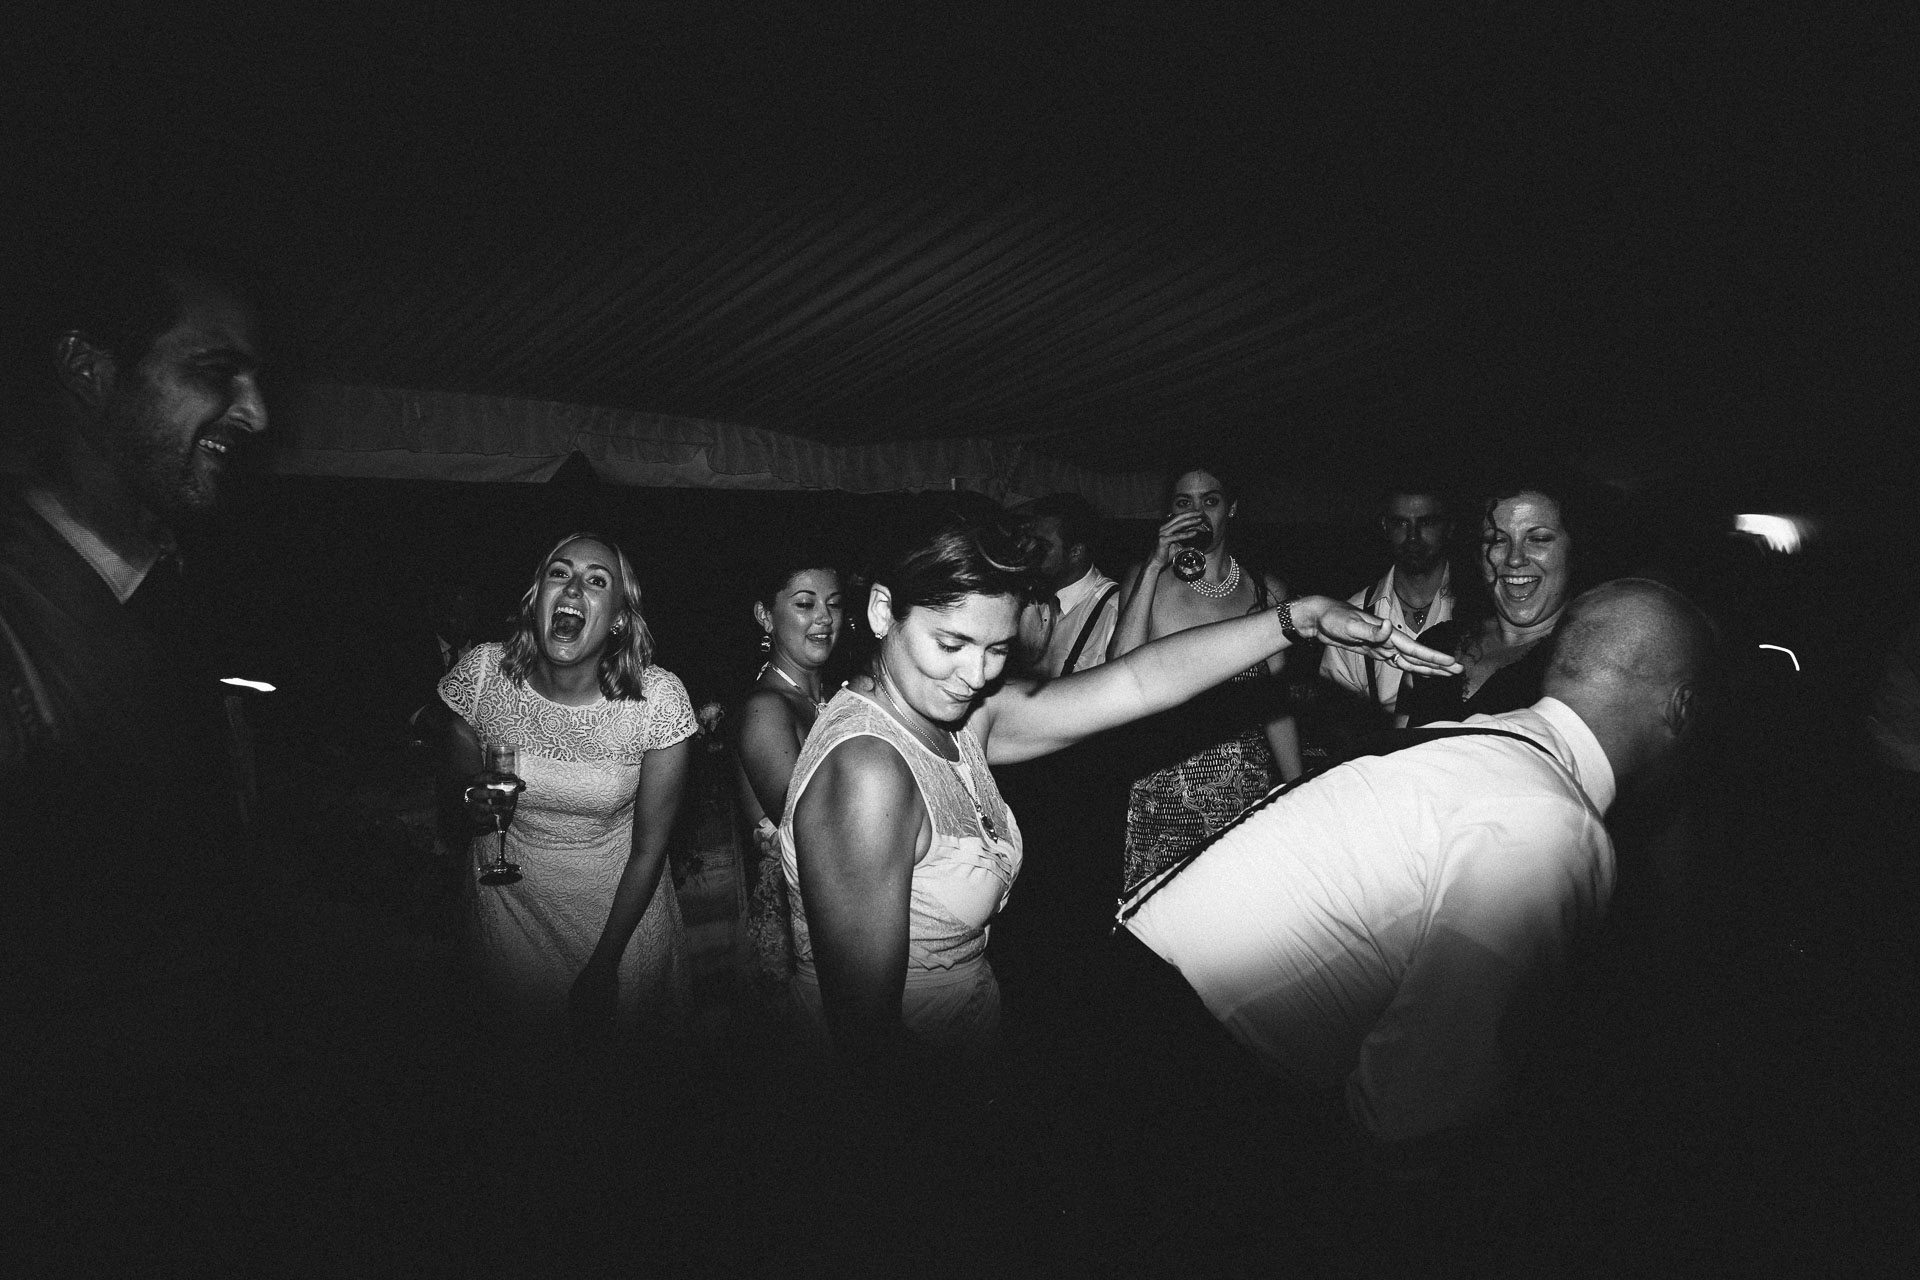 Shawna_Josh_Wedding_Easton_Maryland_JeanLaurentGaudy_139